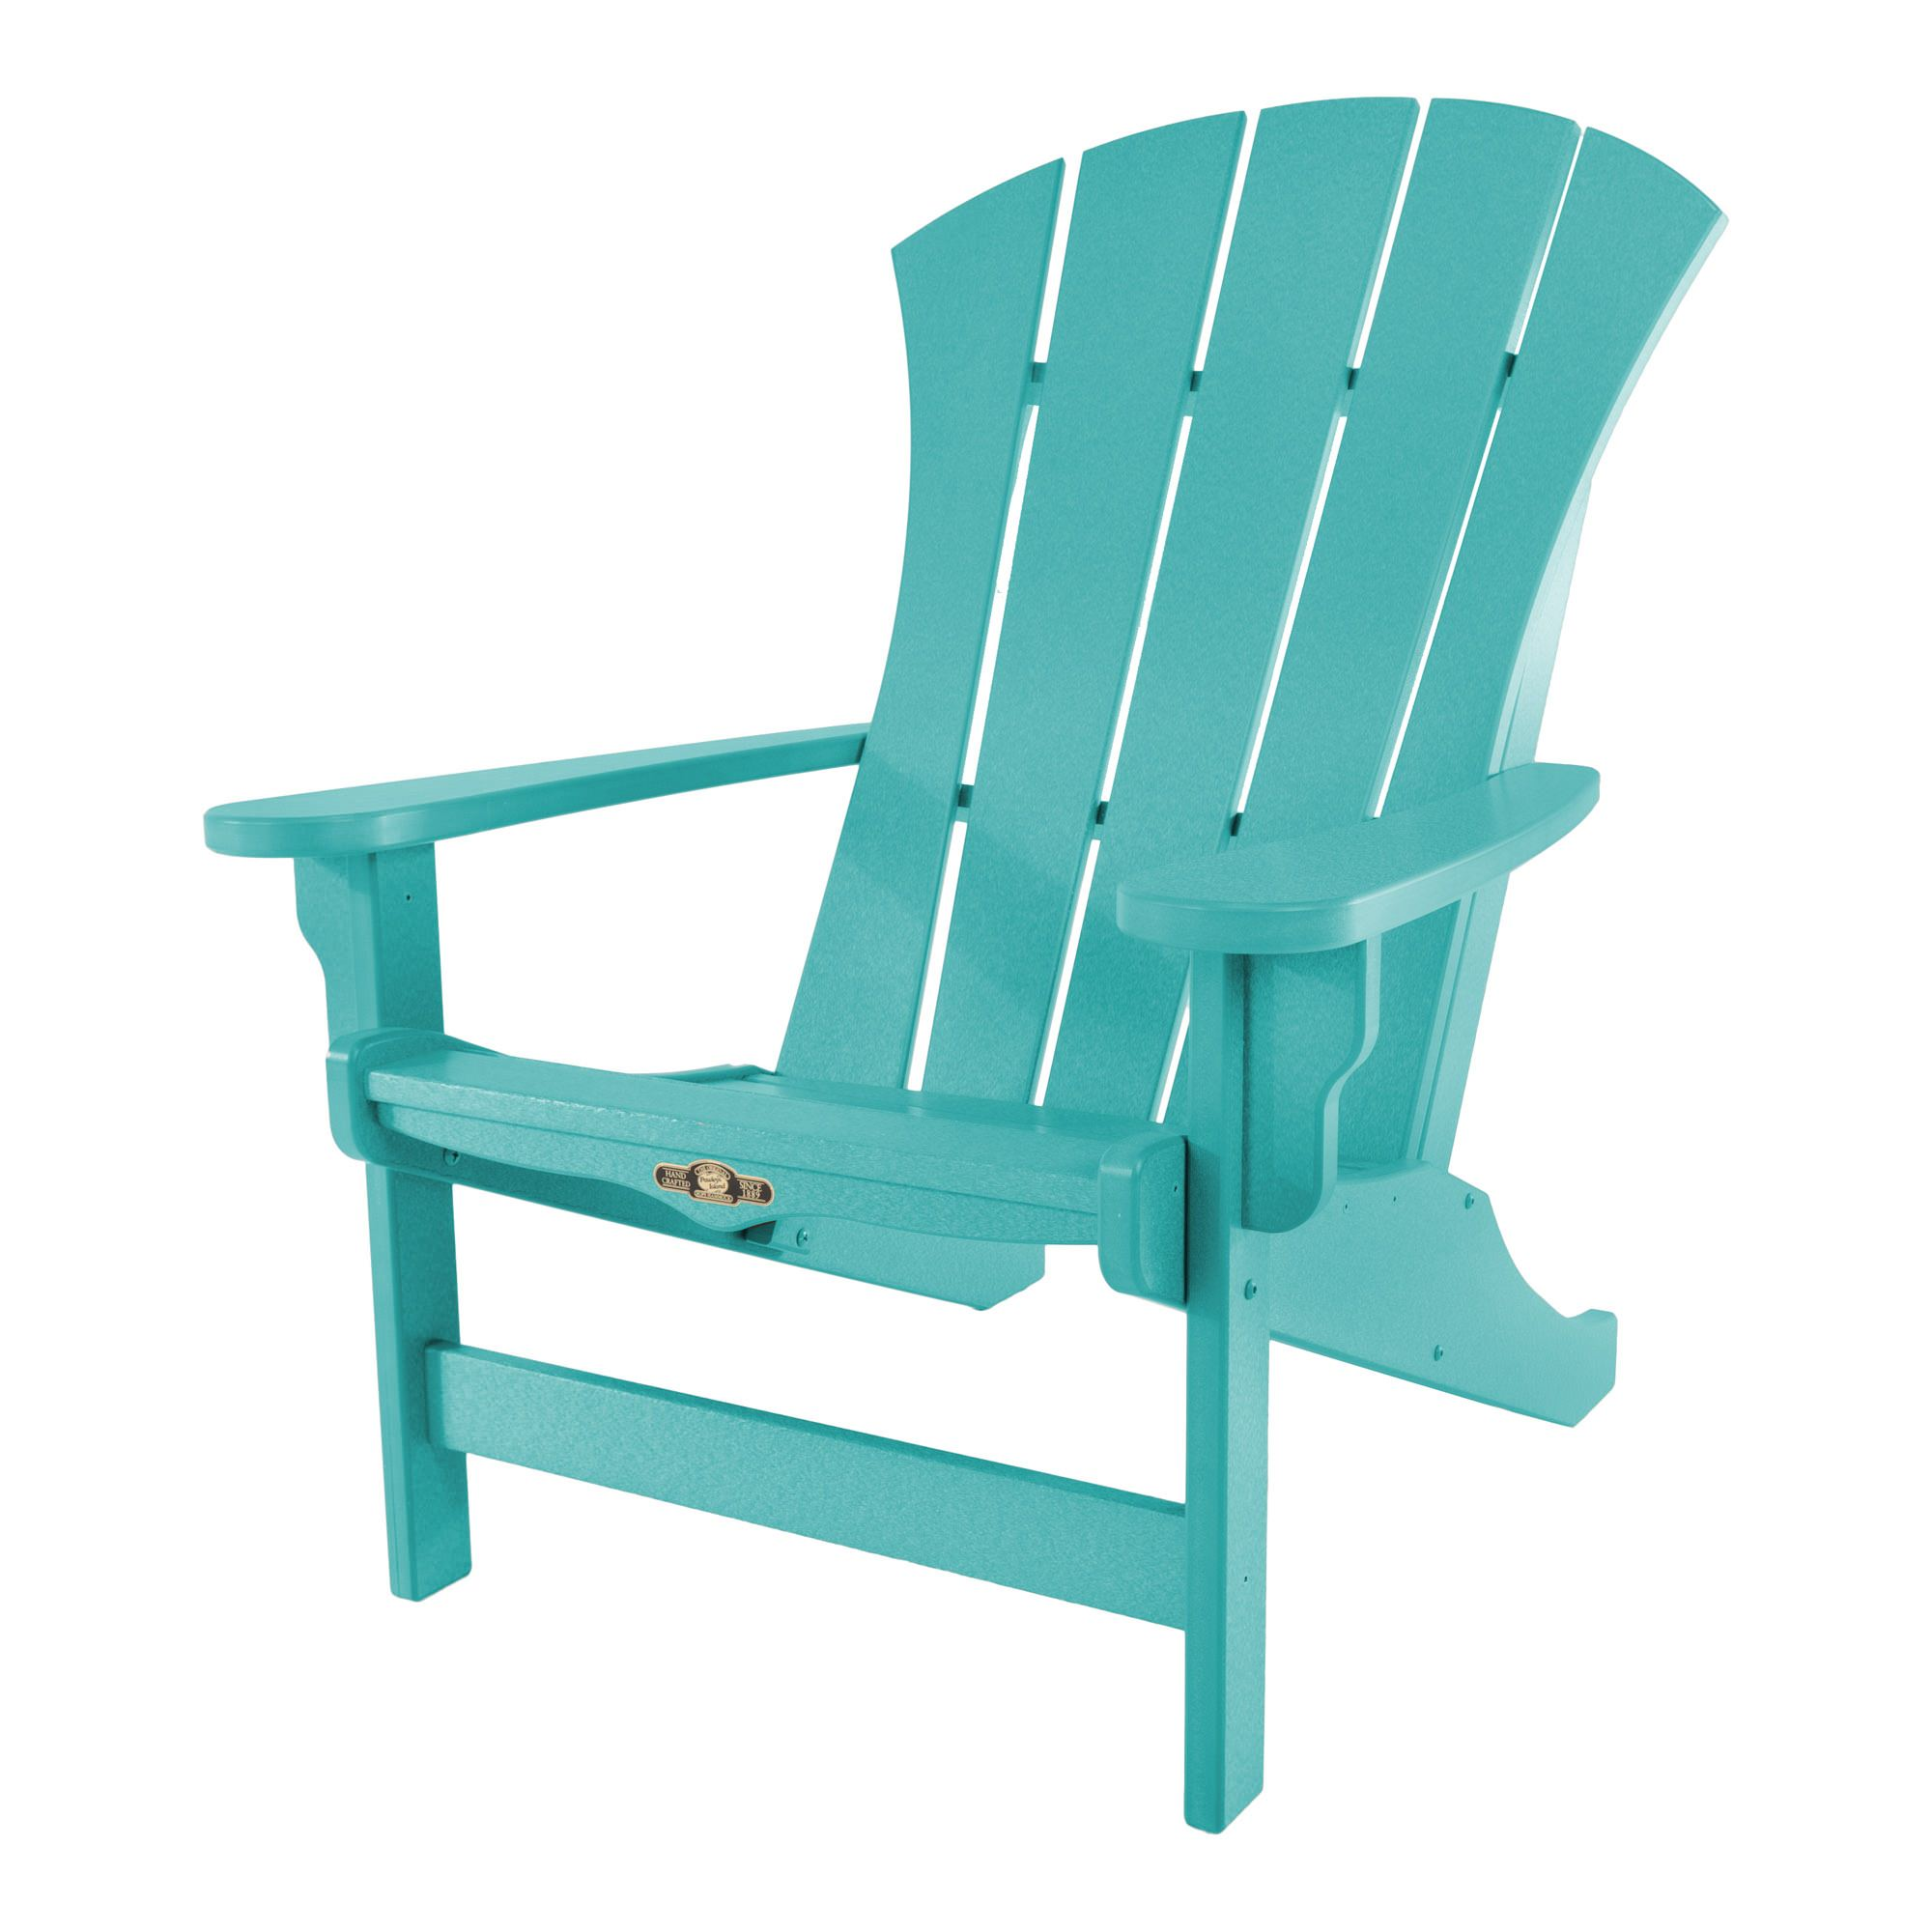 Island Chair Durawood Sunrise Adirondack Chair Pawleys Island Hammocks